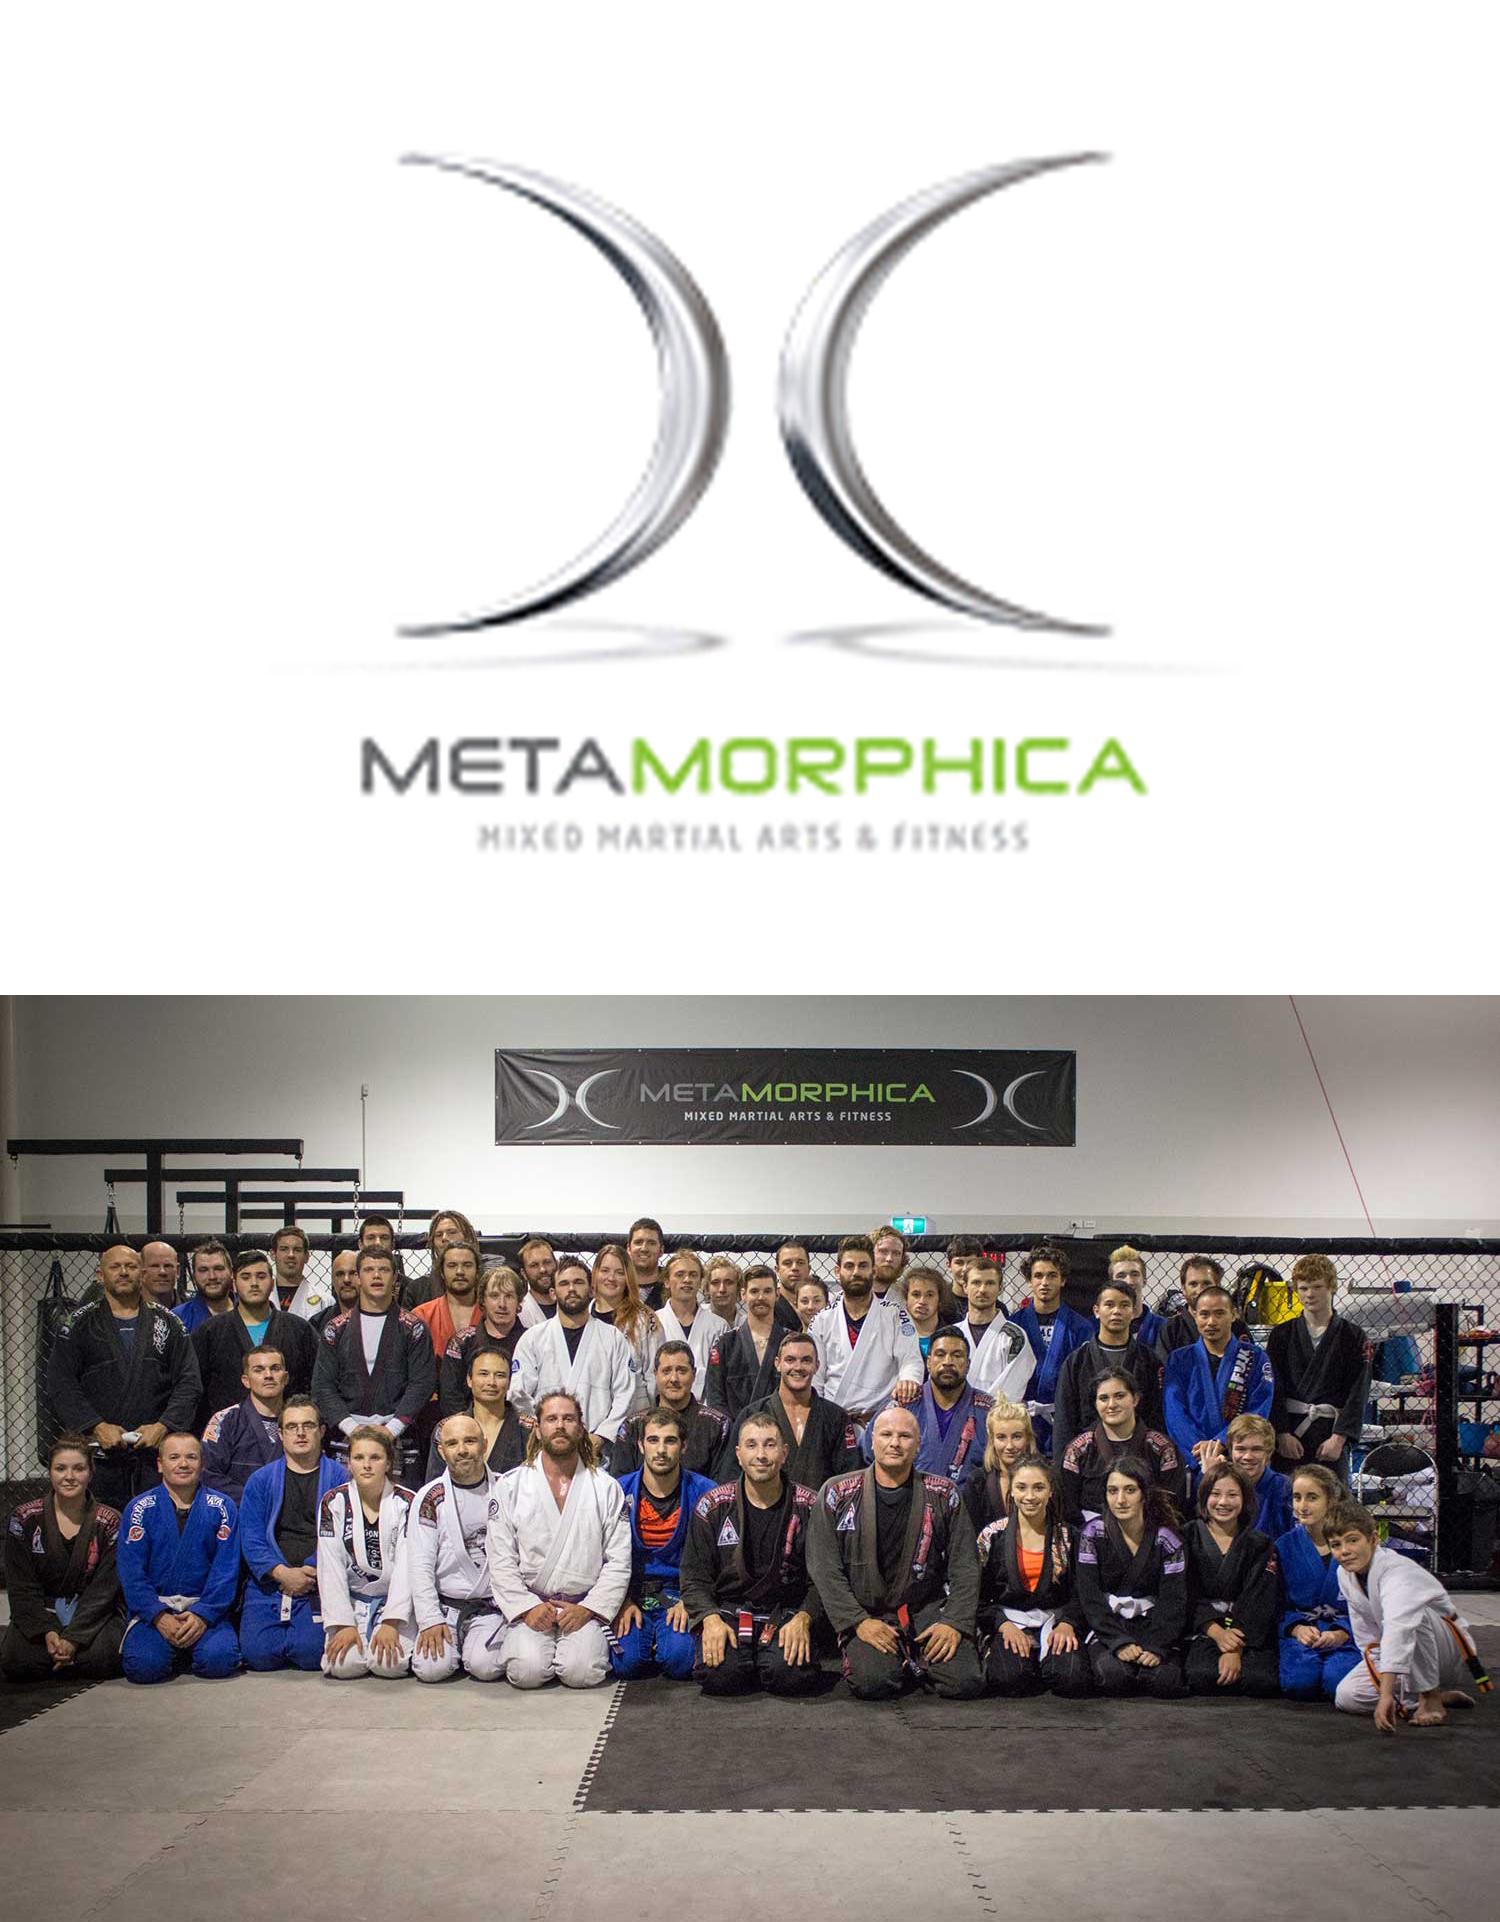 Metamorphica Mixed Martial Arts